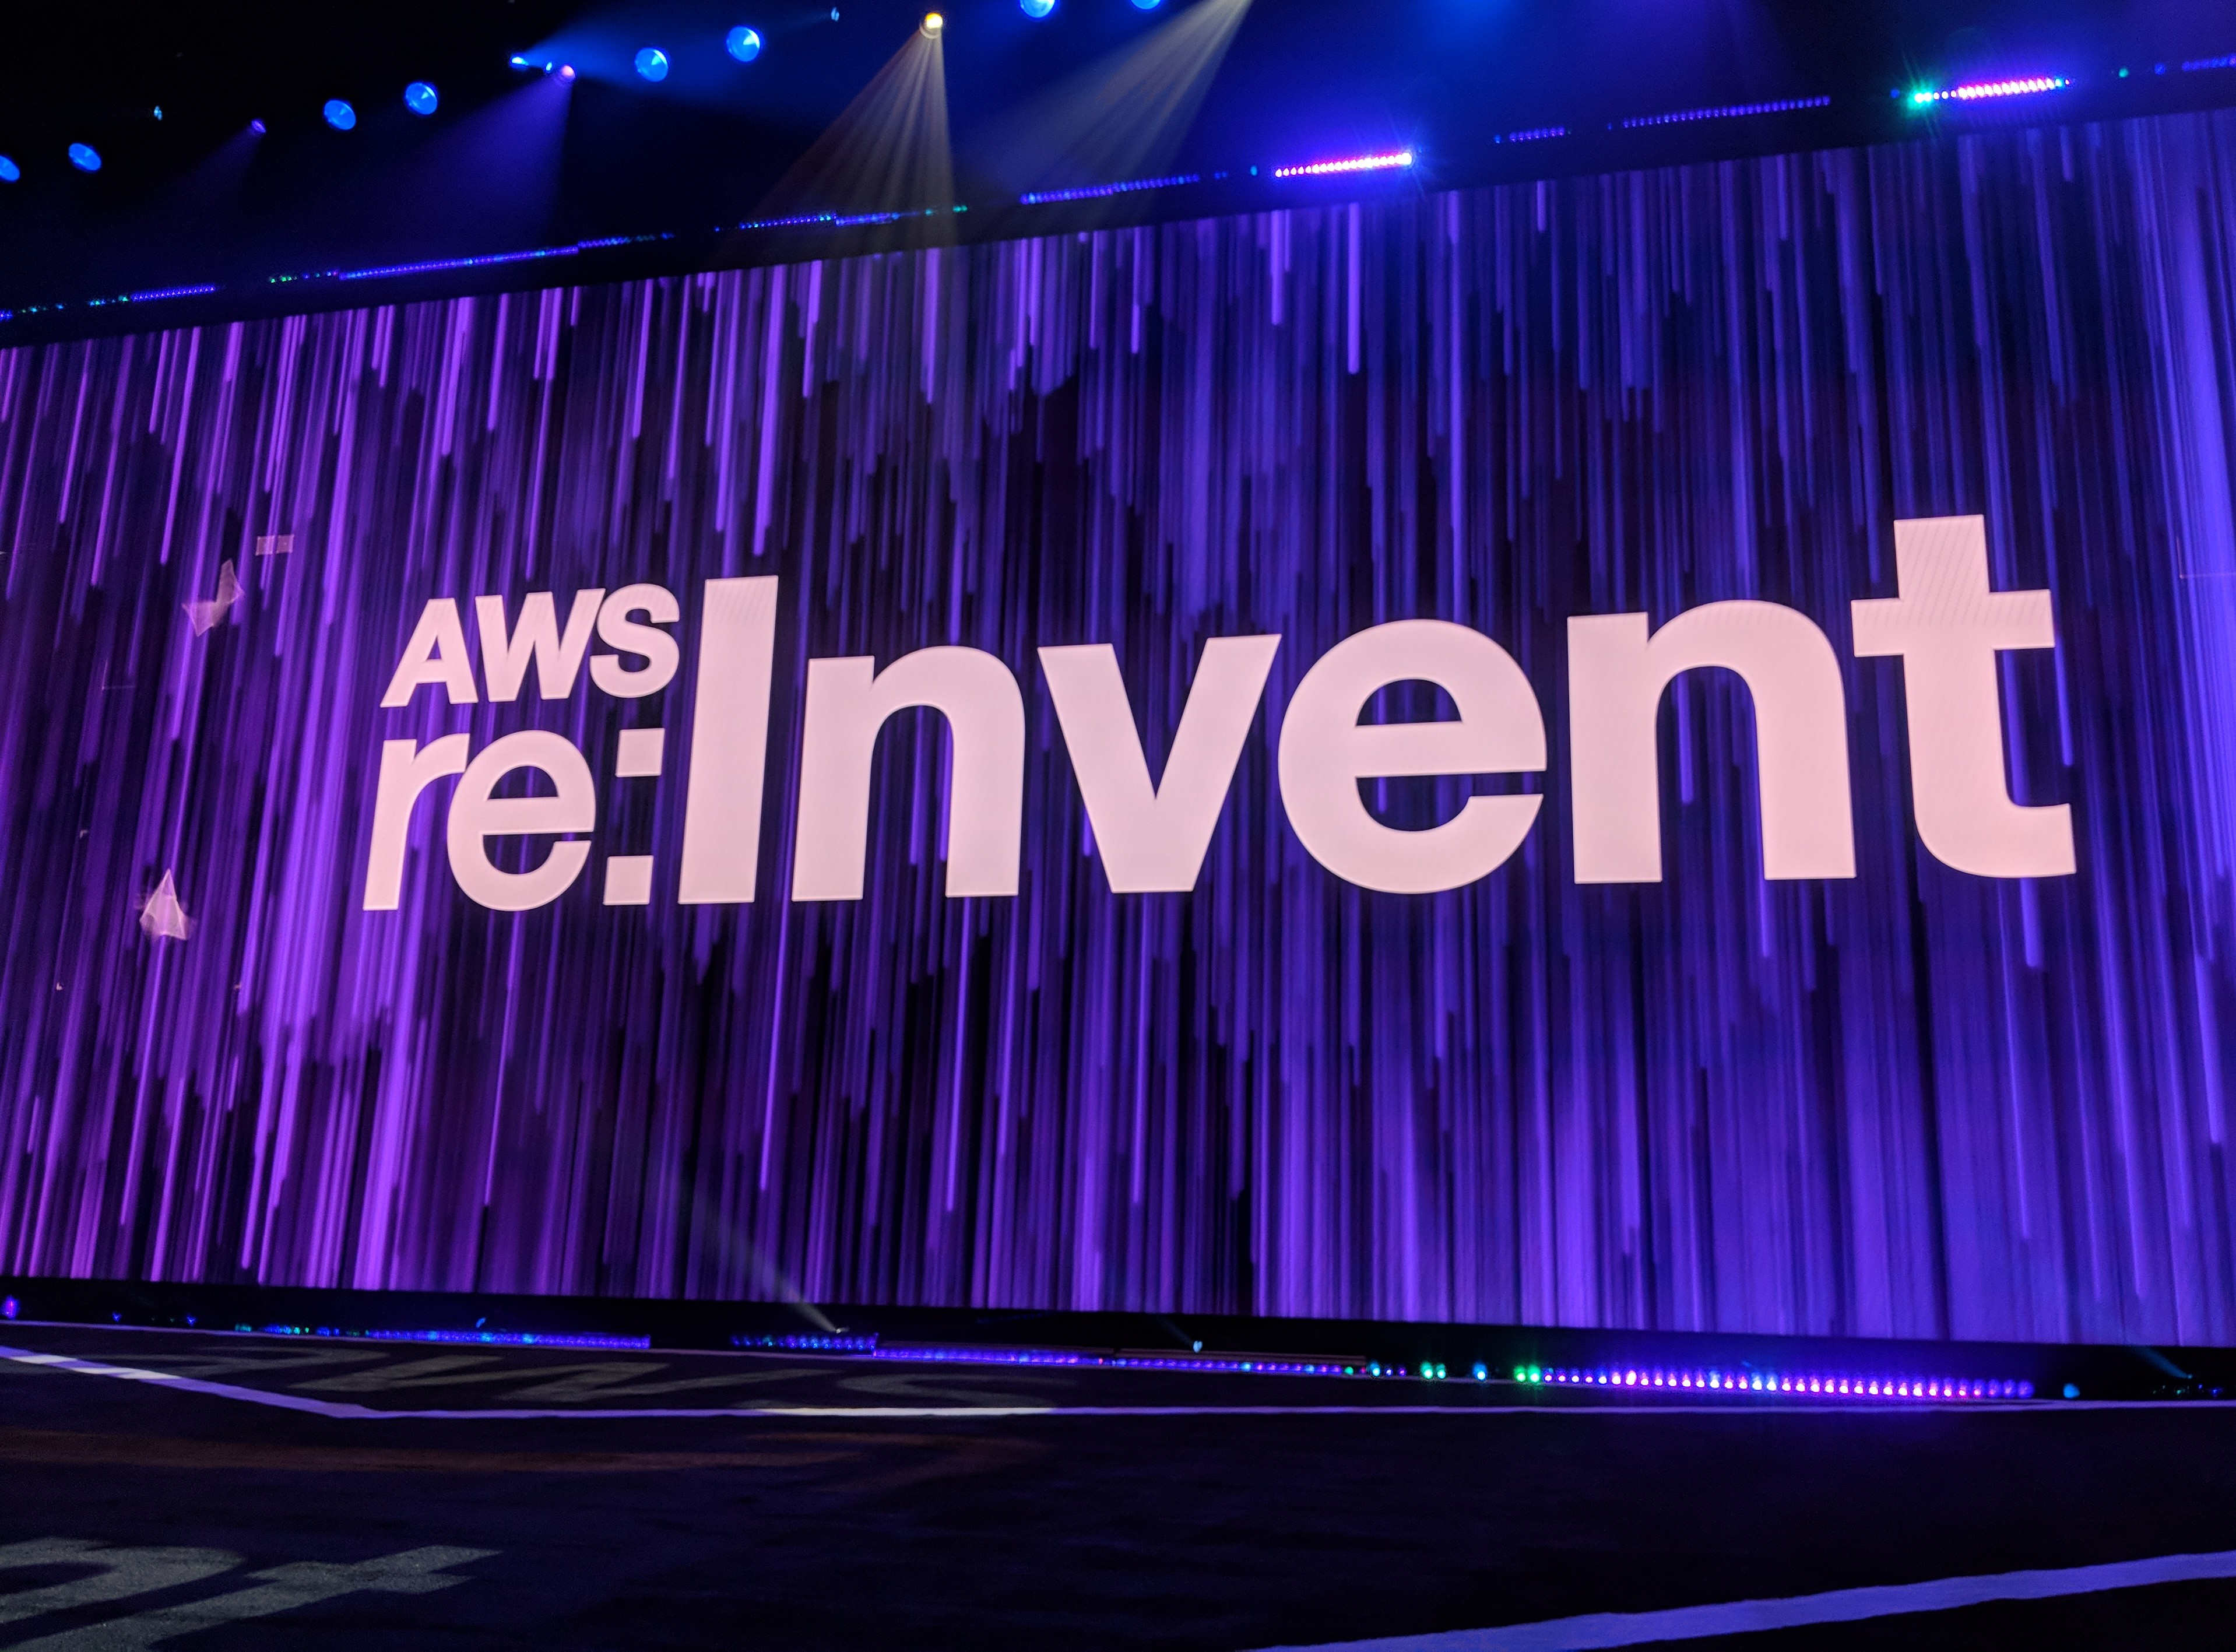 AWS rolls out AppSync to enable offline app usage | TechCrunch